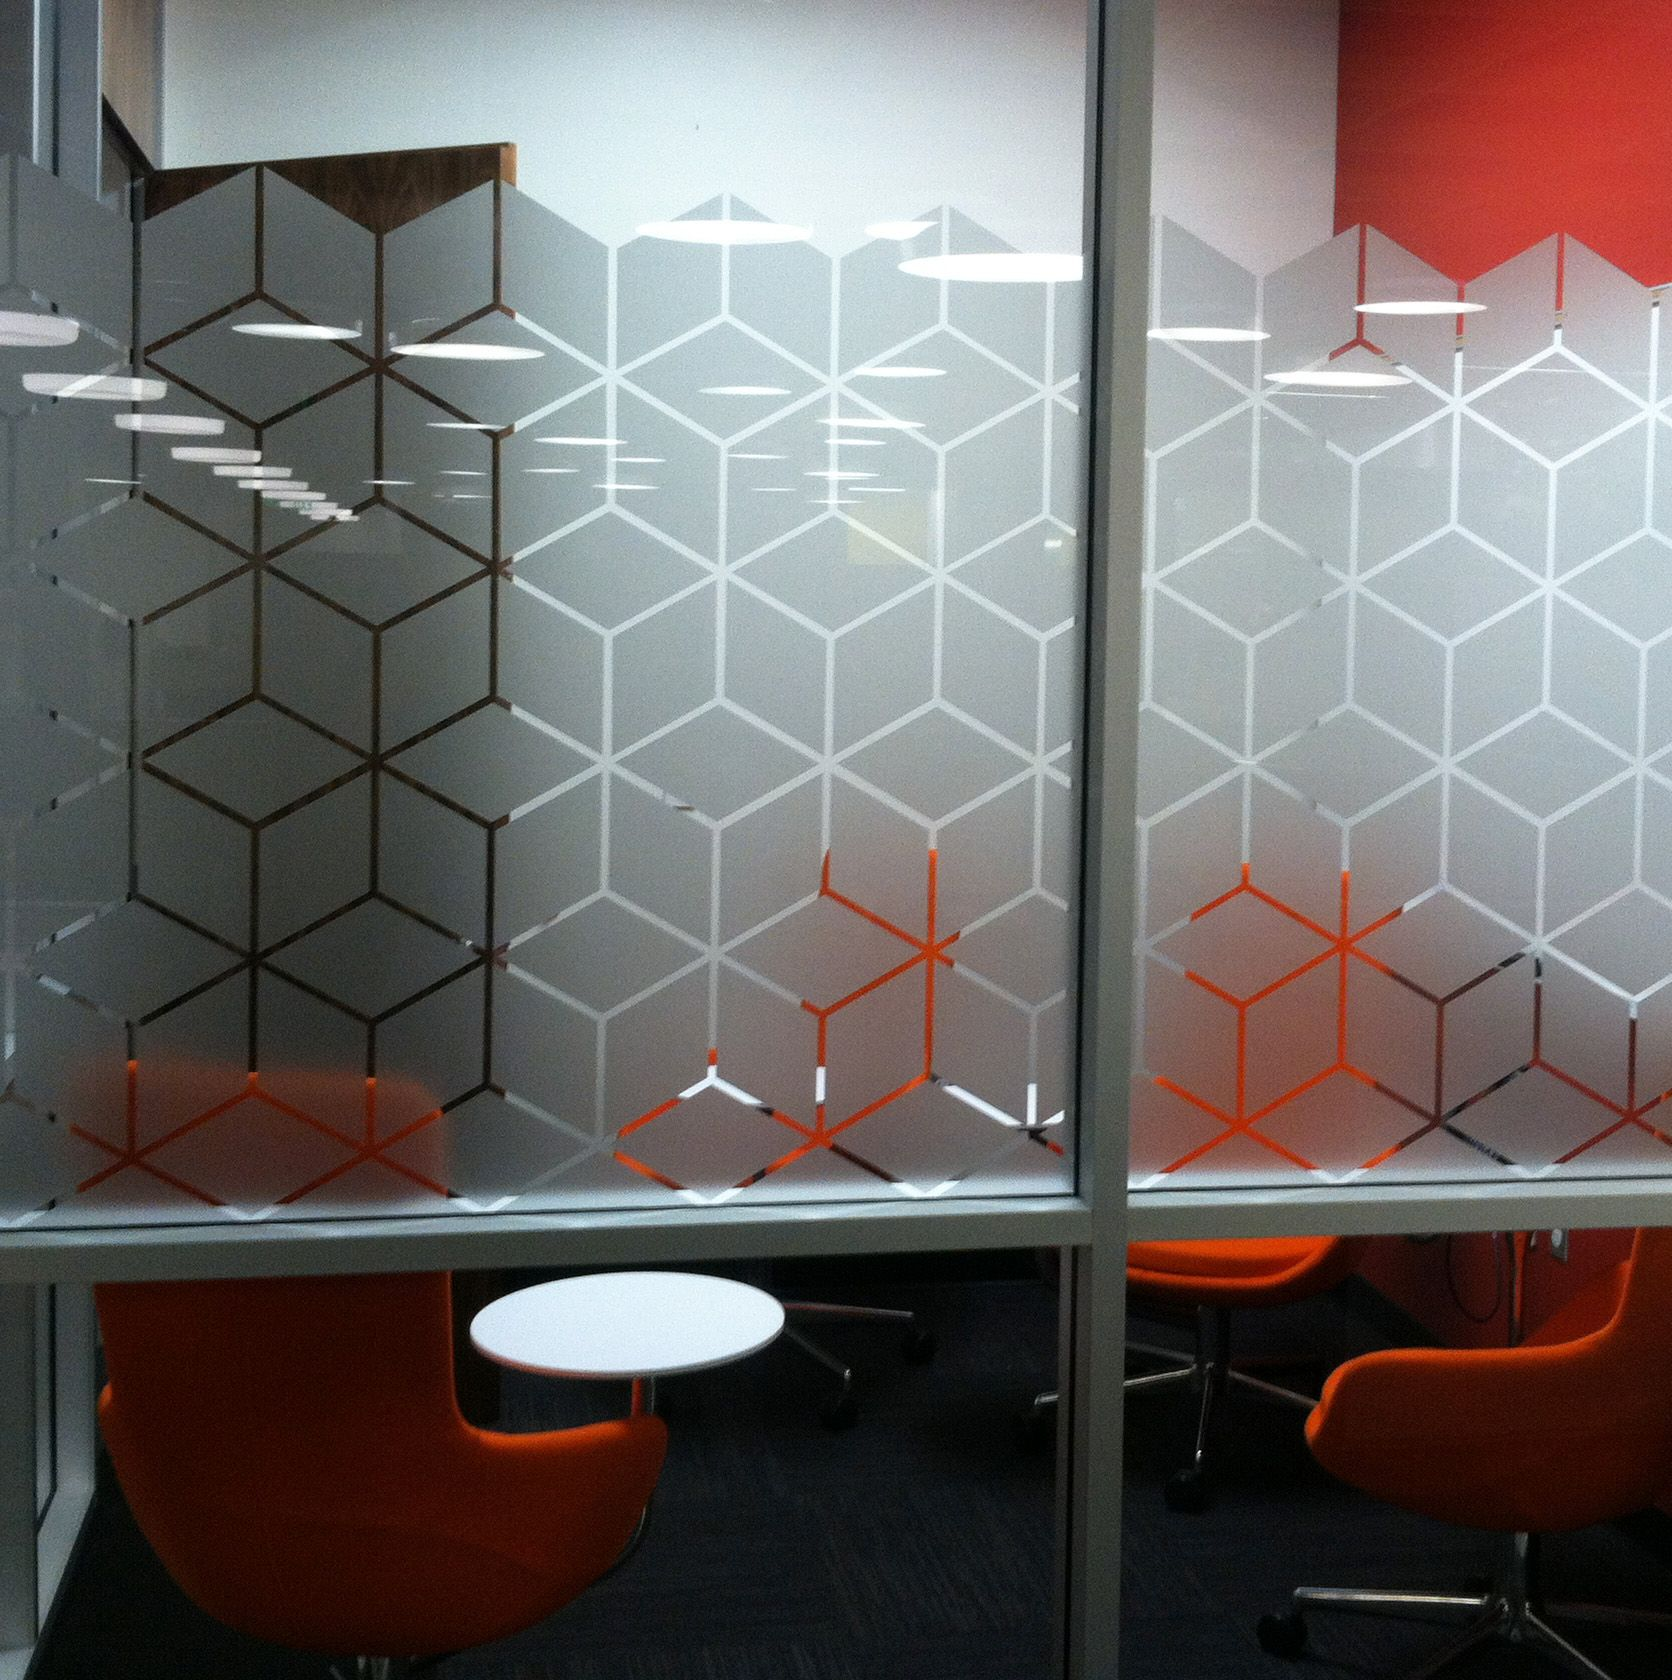 Decor Window Film Decorative For Glass Patterned Glass Main Film And Opaque  With A Classic Model